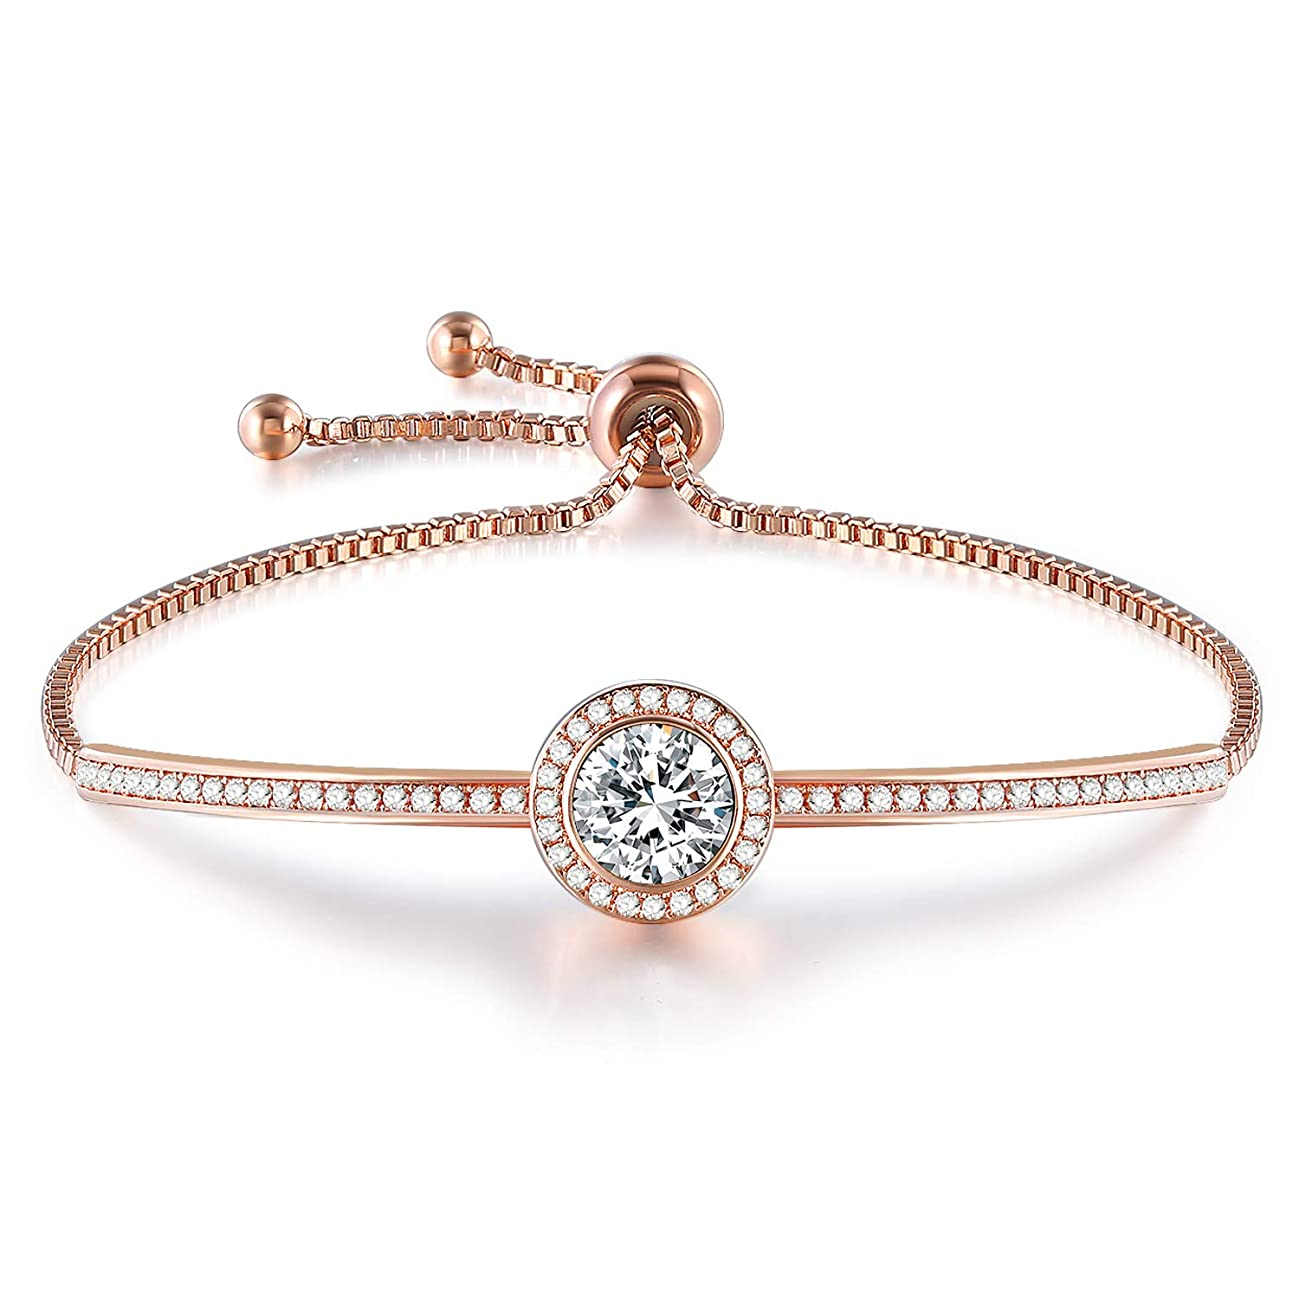 """GEORGE · SMITH Birthday Gifts""""Endless Saturn""""Classic Design Adjustable Women Bangle Bracelet Crystals from Swarovski, Jewelry for Girlfriend Wife Mom -a Luxury Gift Box Included"""